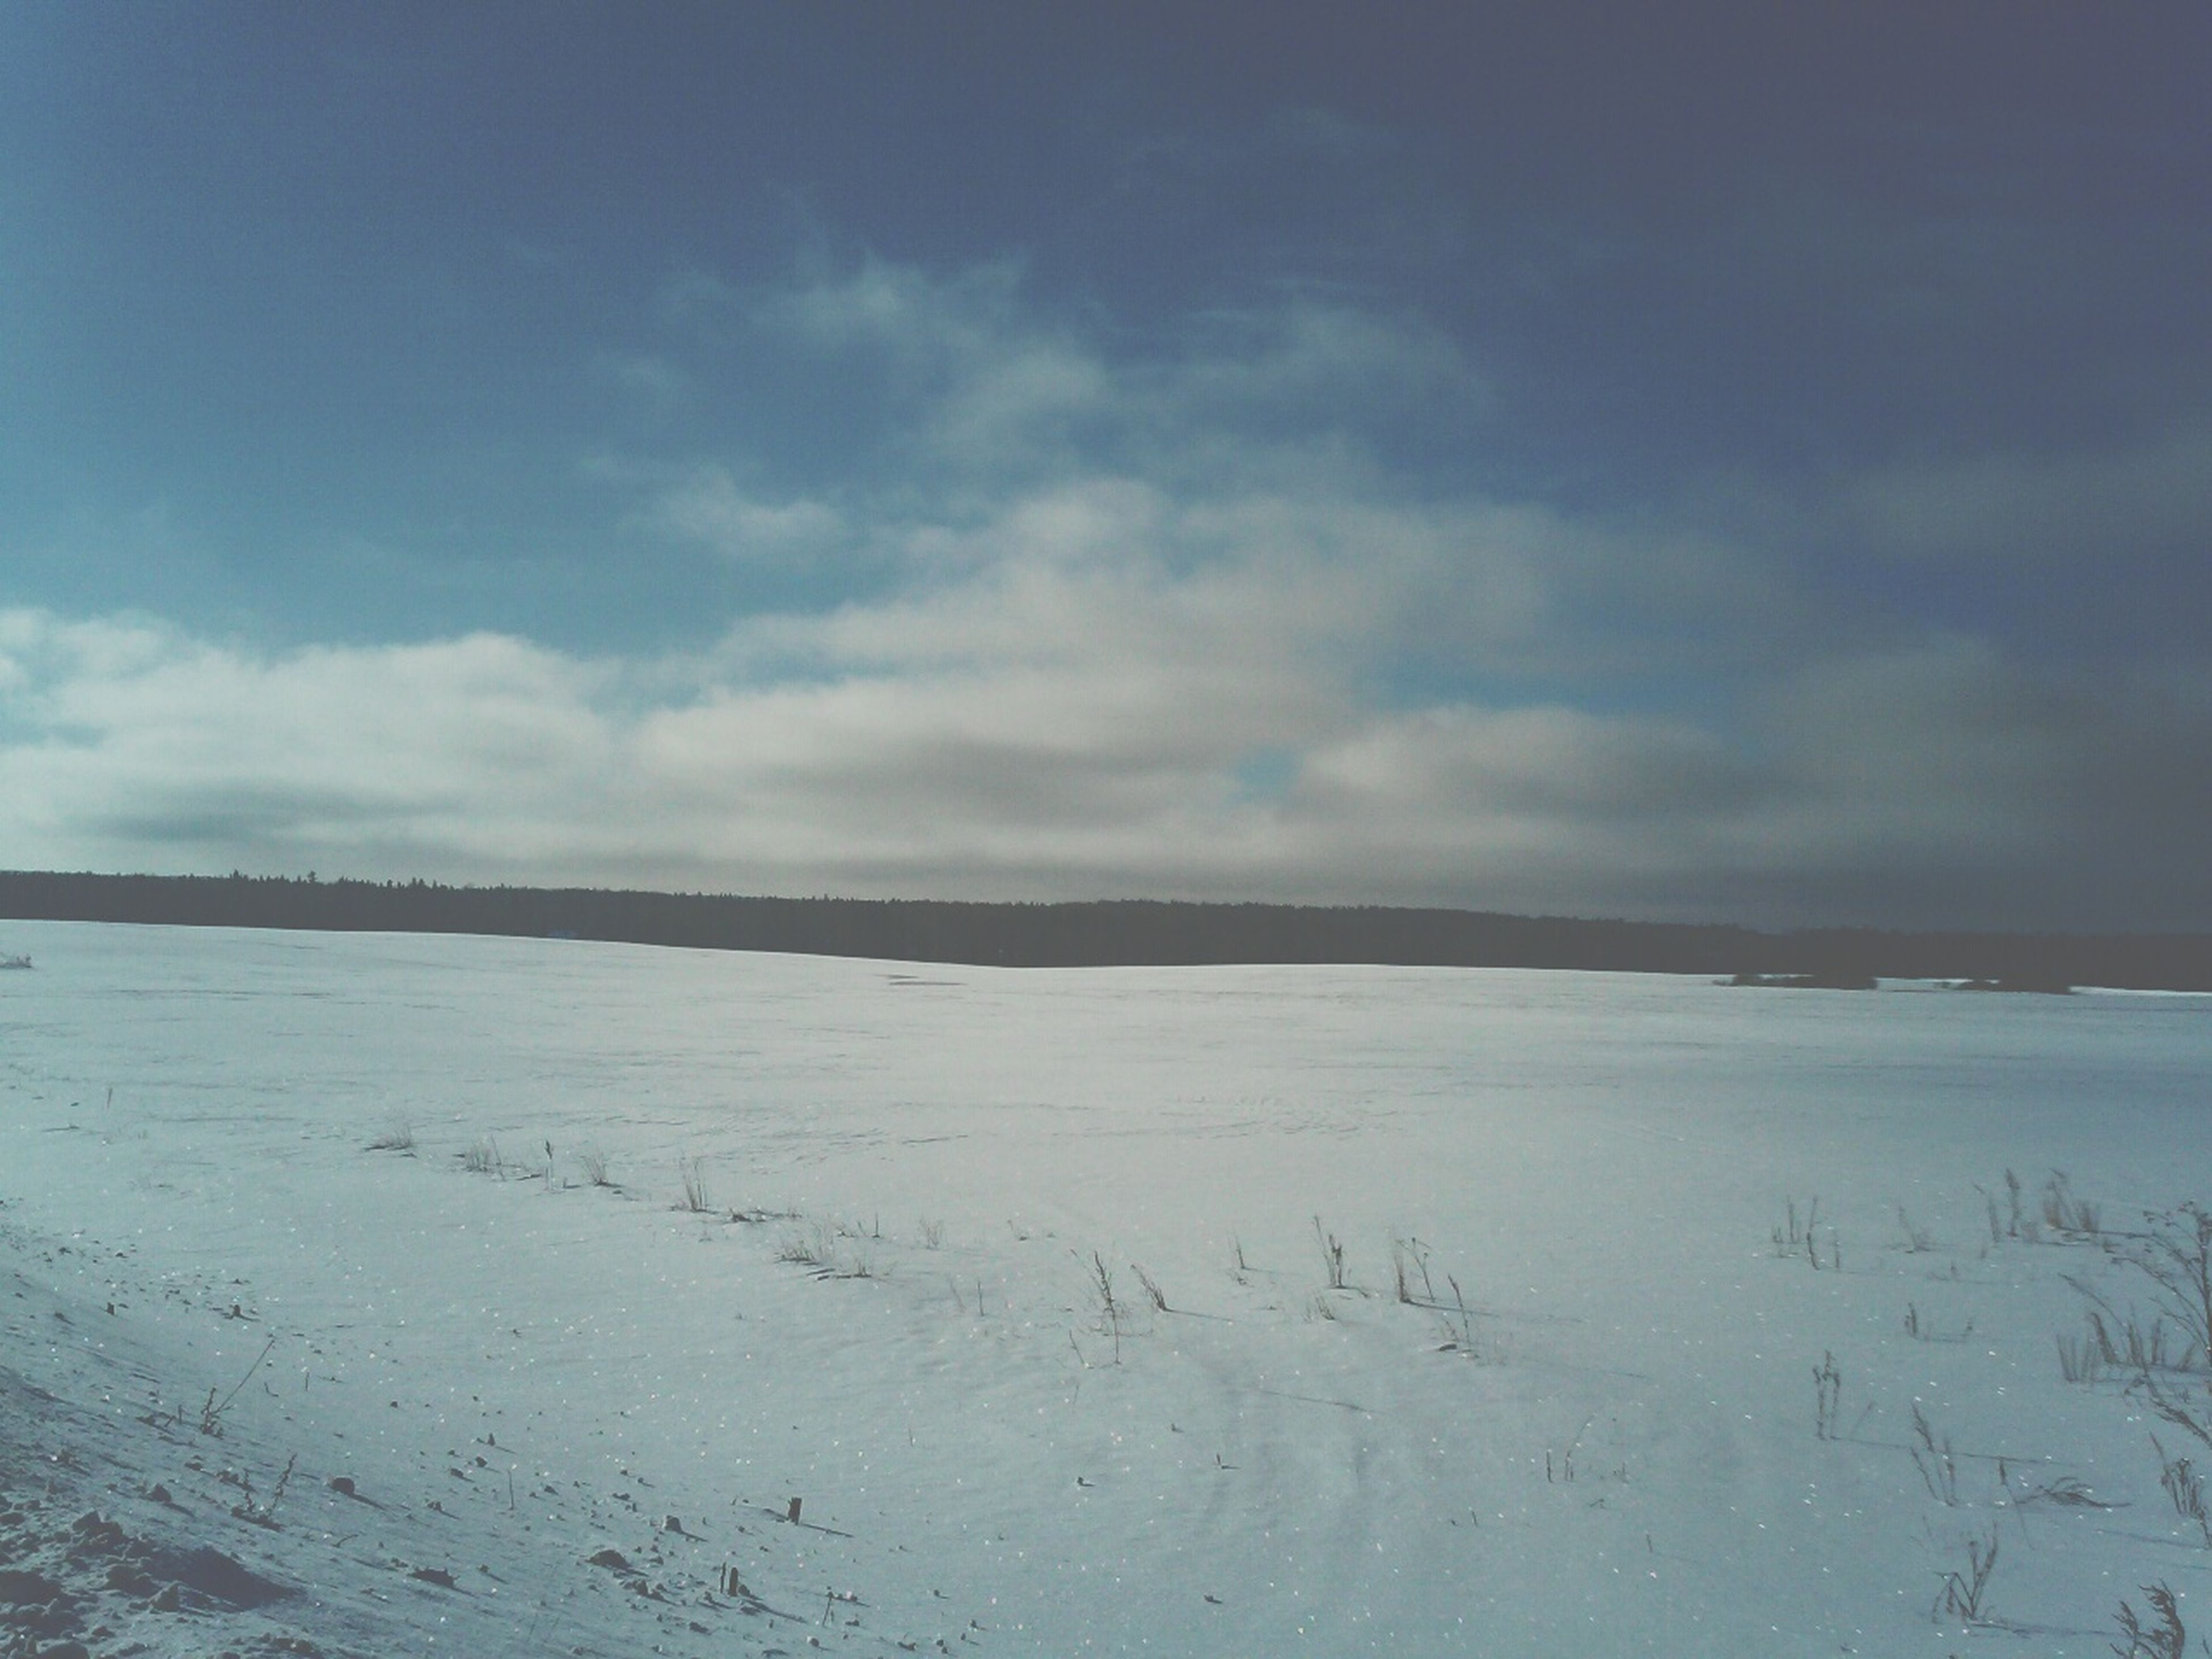 tranquil scene, tranquility, sky, scenics, snow, cold temperature, winter, beauty in nature, nature, landscape, weather, cloud - sky, beach, water, non-urban scene, sand, idyllic, season, cloud, day